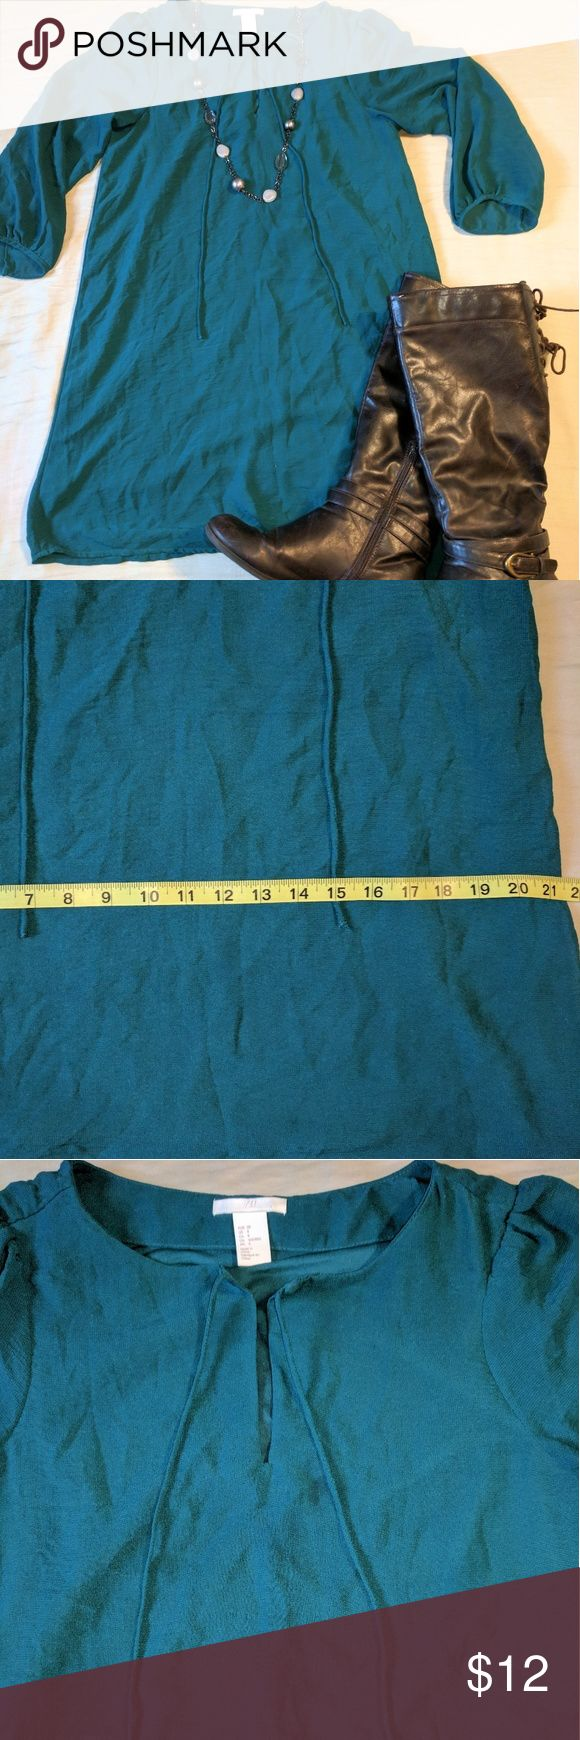 Ladies Teal green knee length dress 3/4 sleeve M8 In great e only worn a few time. You are buying the dress only, the necklace and boots are not for sale. Size 8 H&M dress. See photos for details. H&M Dresses Midi